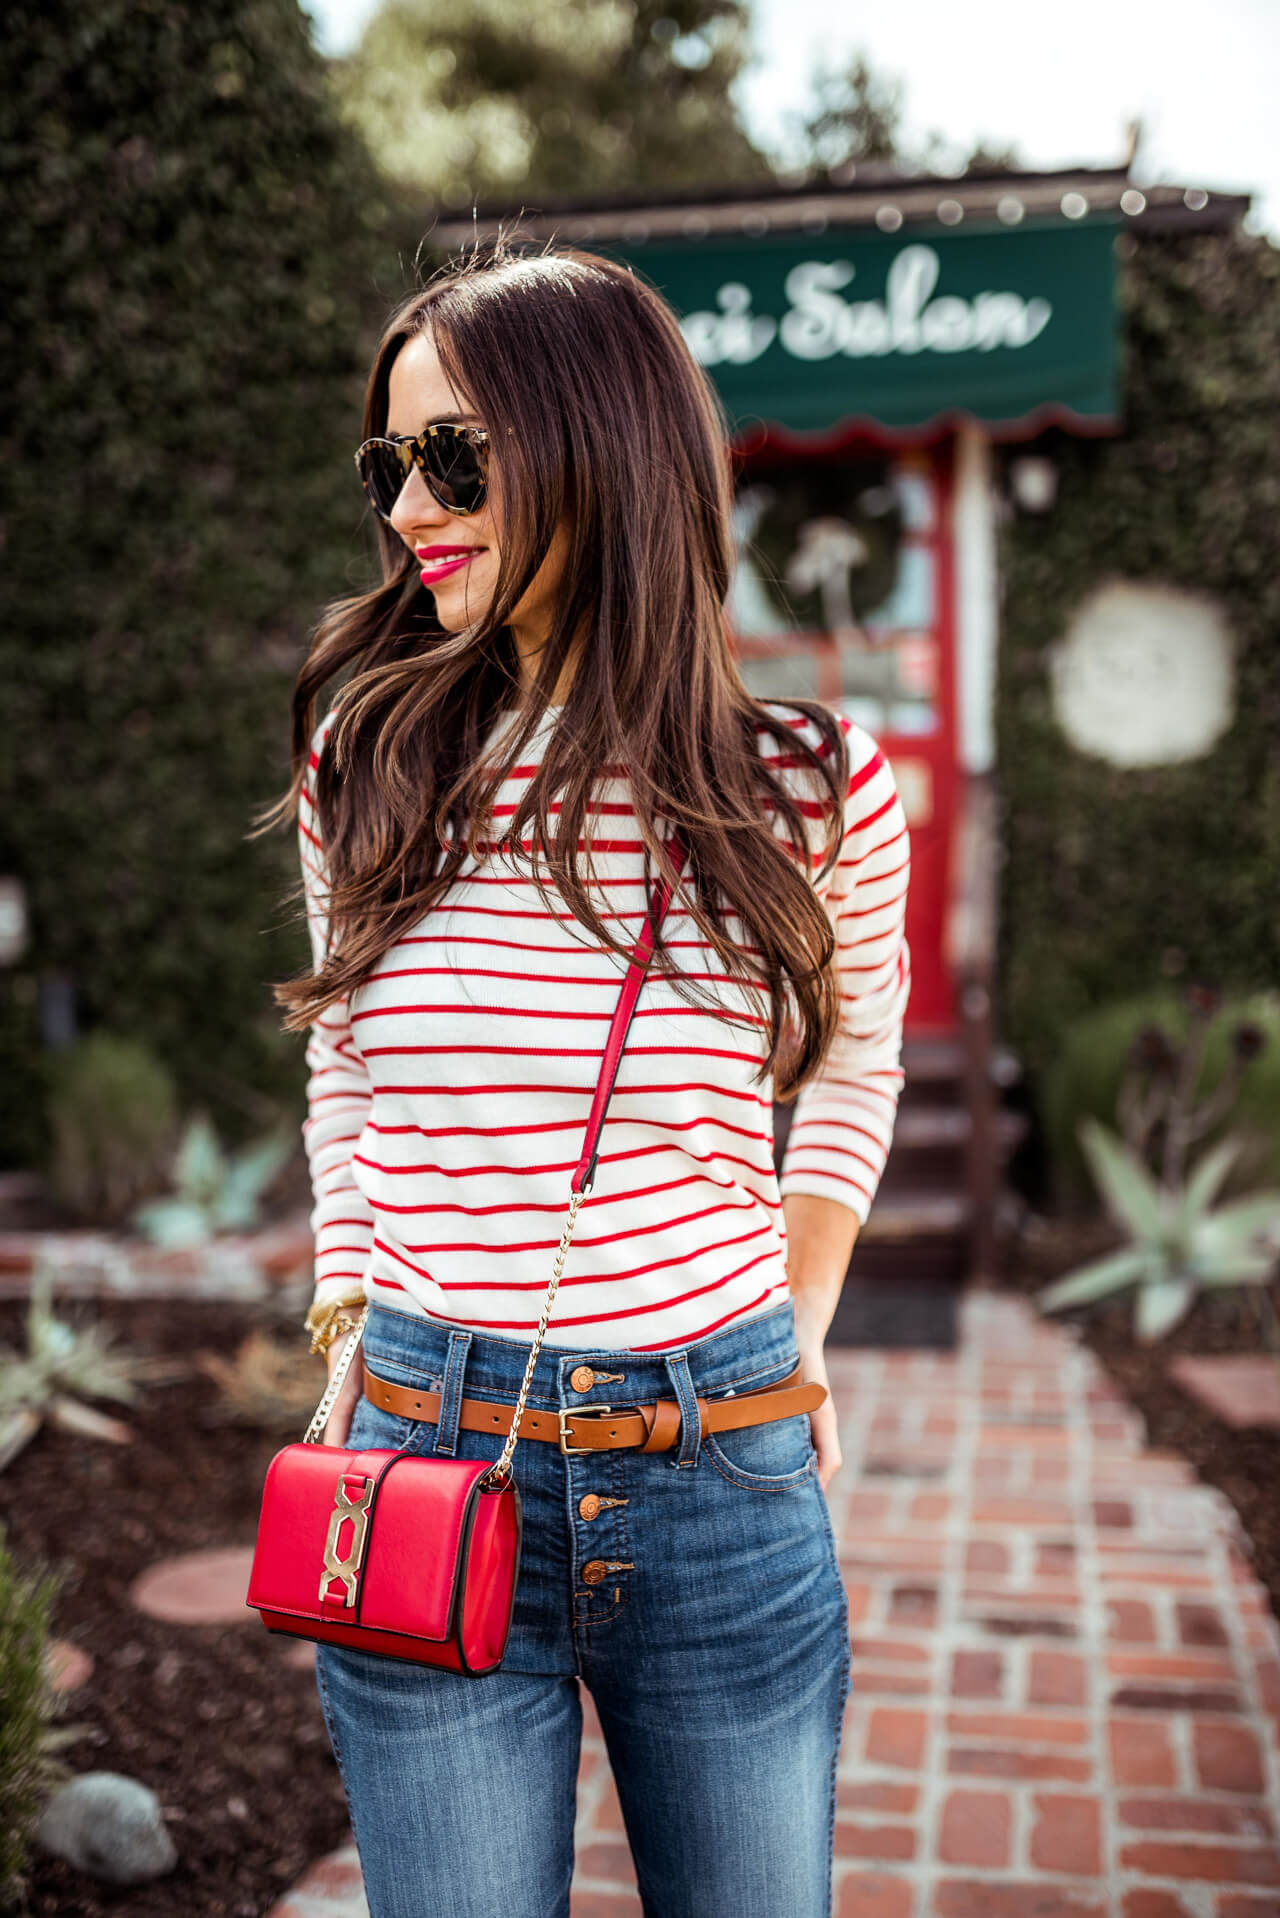 the pair of jeans every girl needs in her closet - M Loves M @marmar